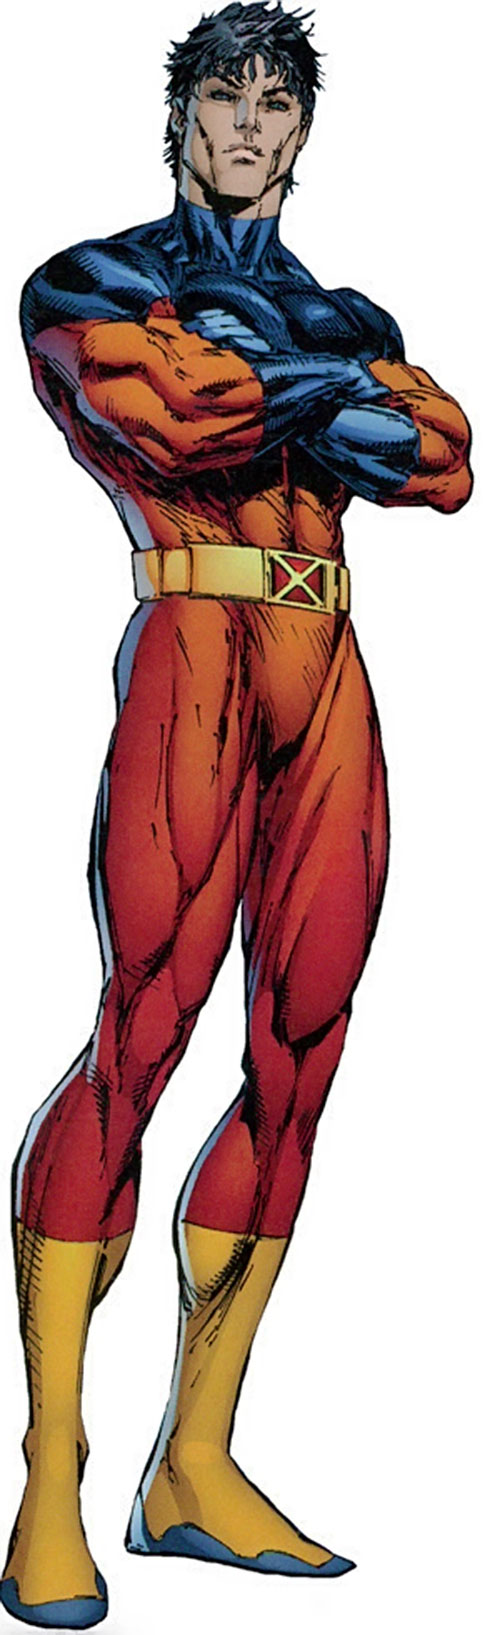 Vulcan (X-Men enemy) (Marvel Comics)